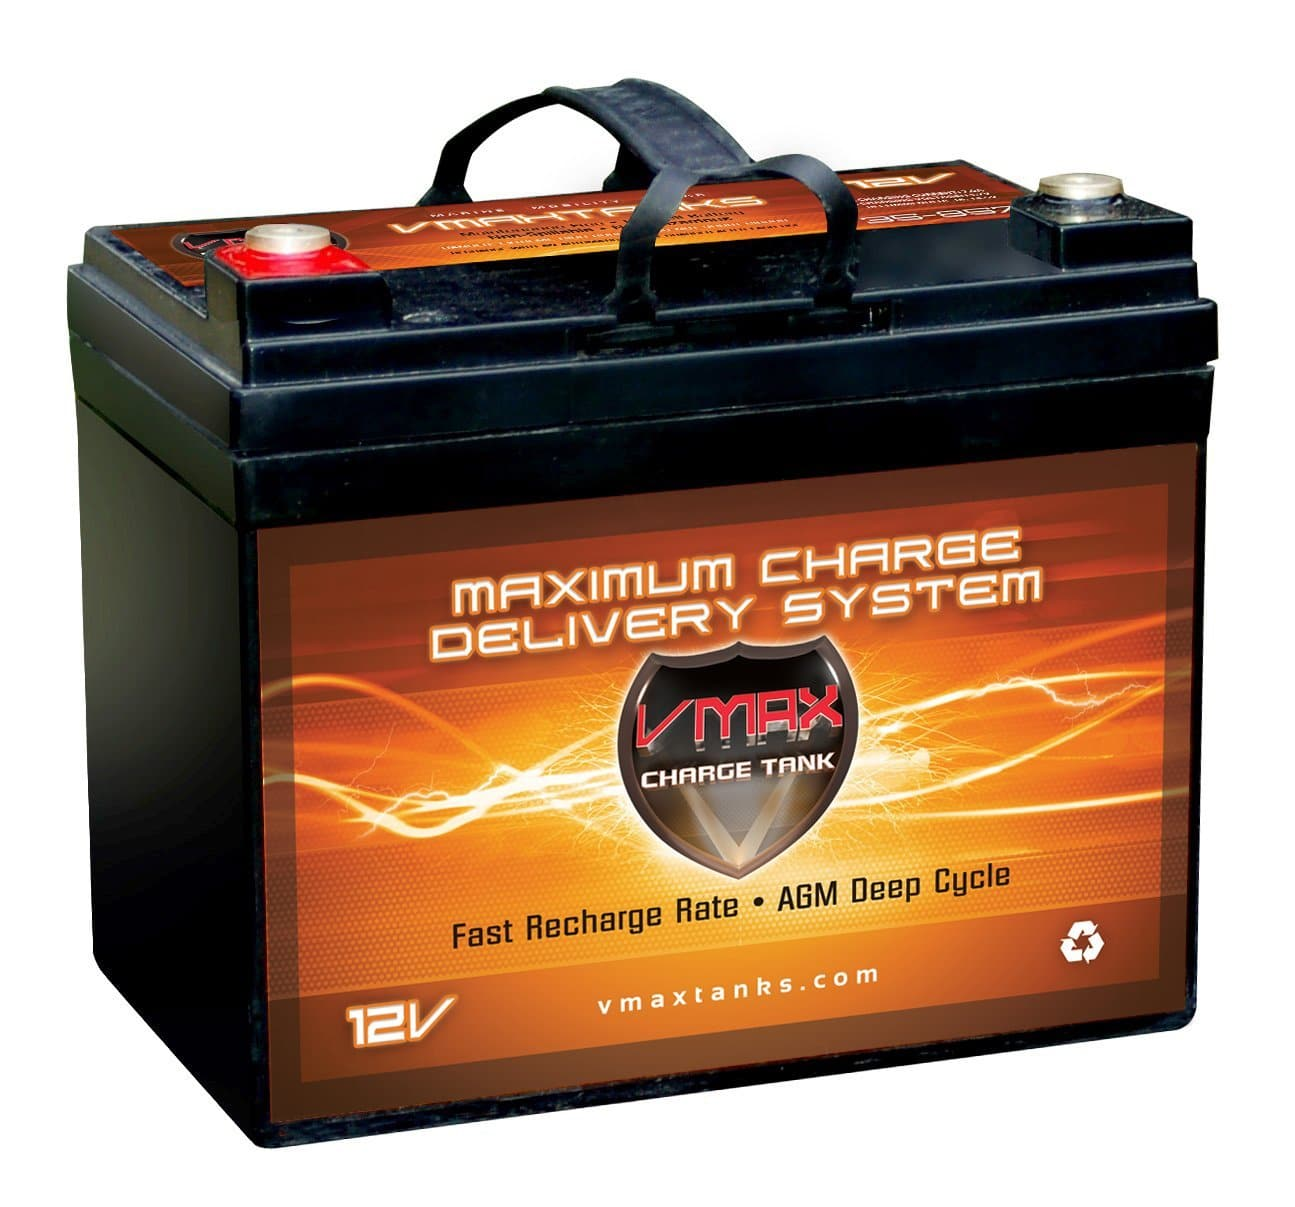 marine batteries single phase dol starter wiring diagram best battery reviews 2016 edition